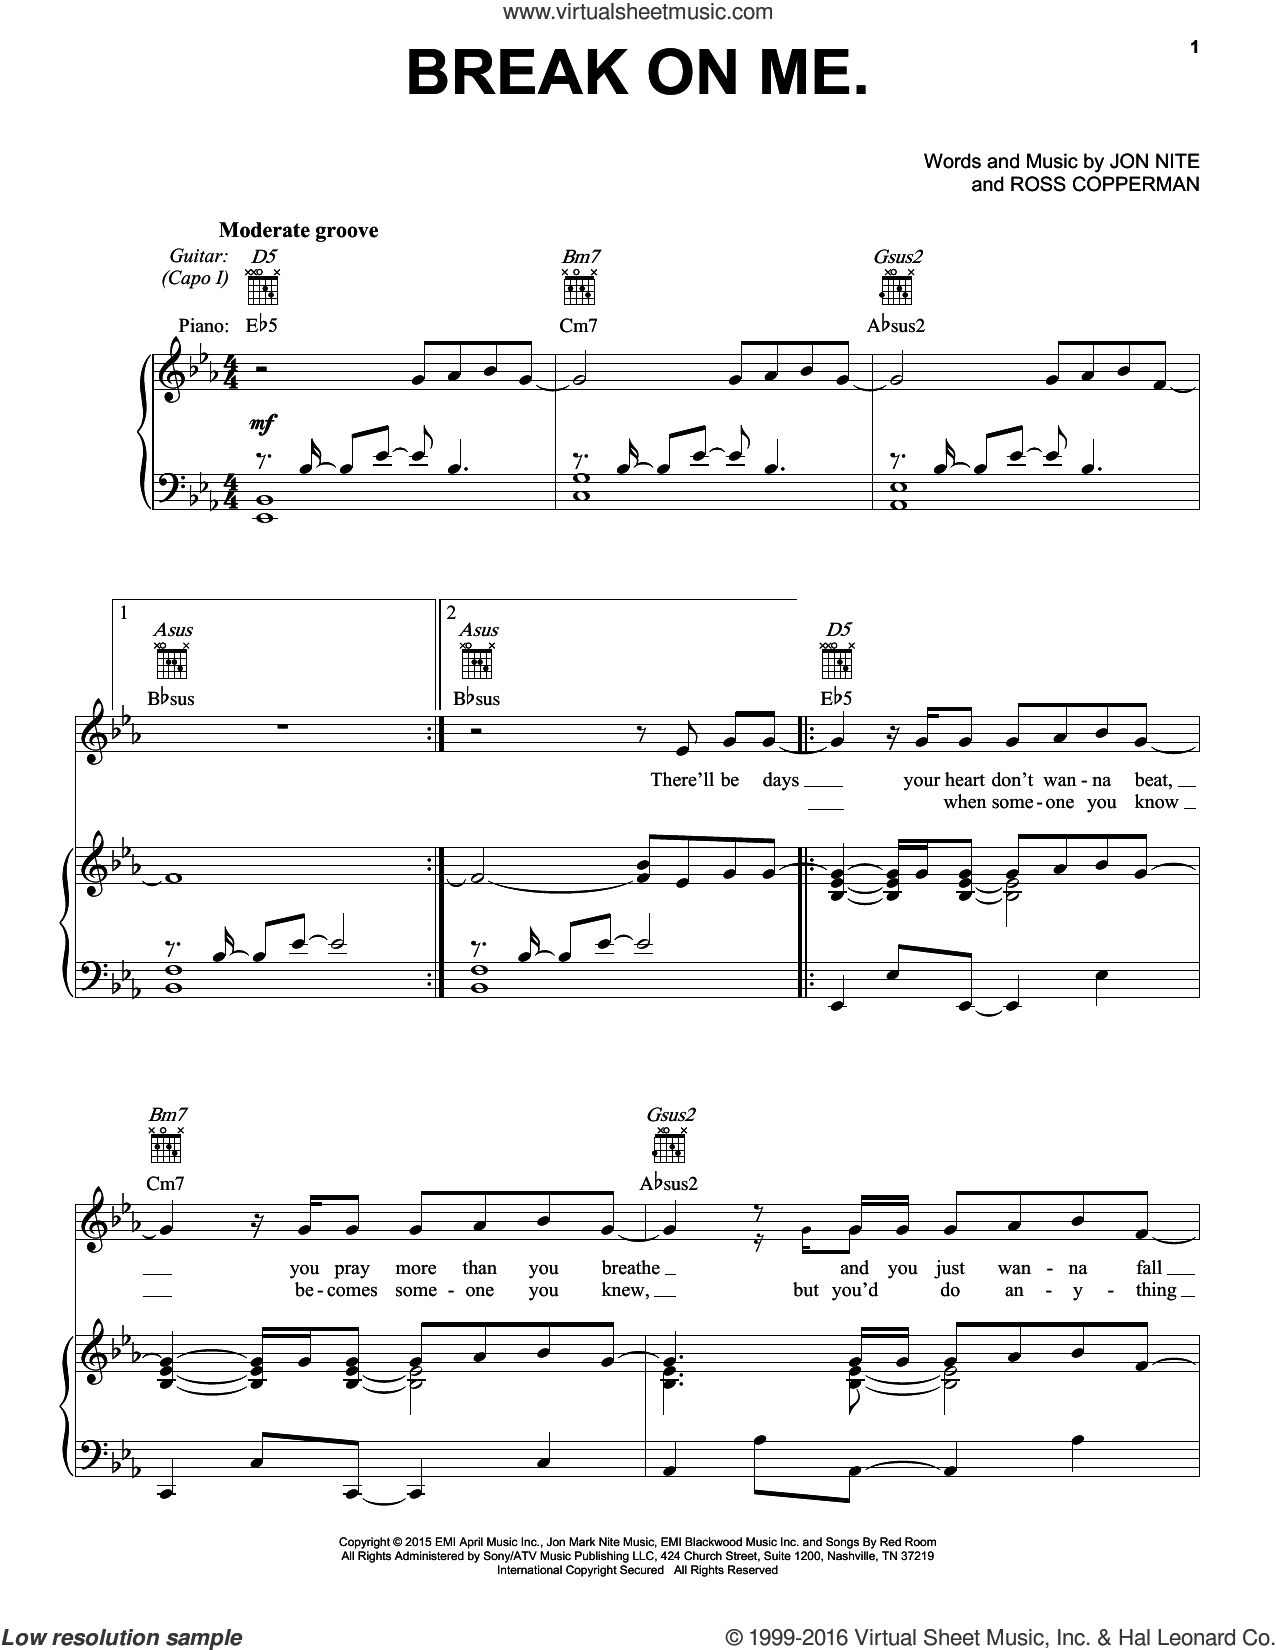 Break On Me sheet music for voice, piano or guitar by Keith Urban, Jon Nite and Ross Copperman, intermediate skill level